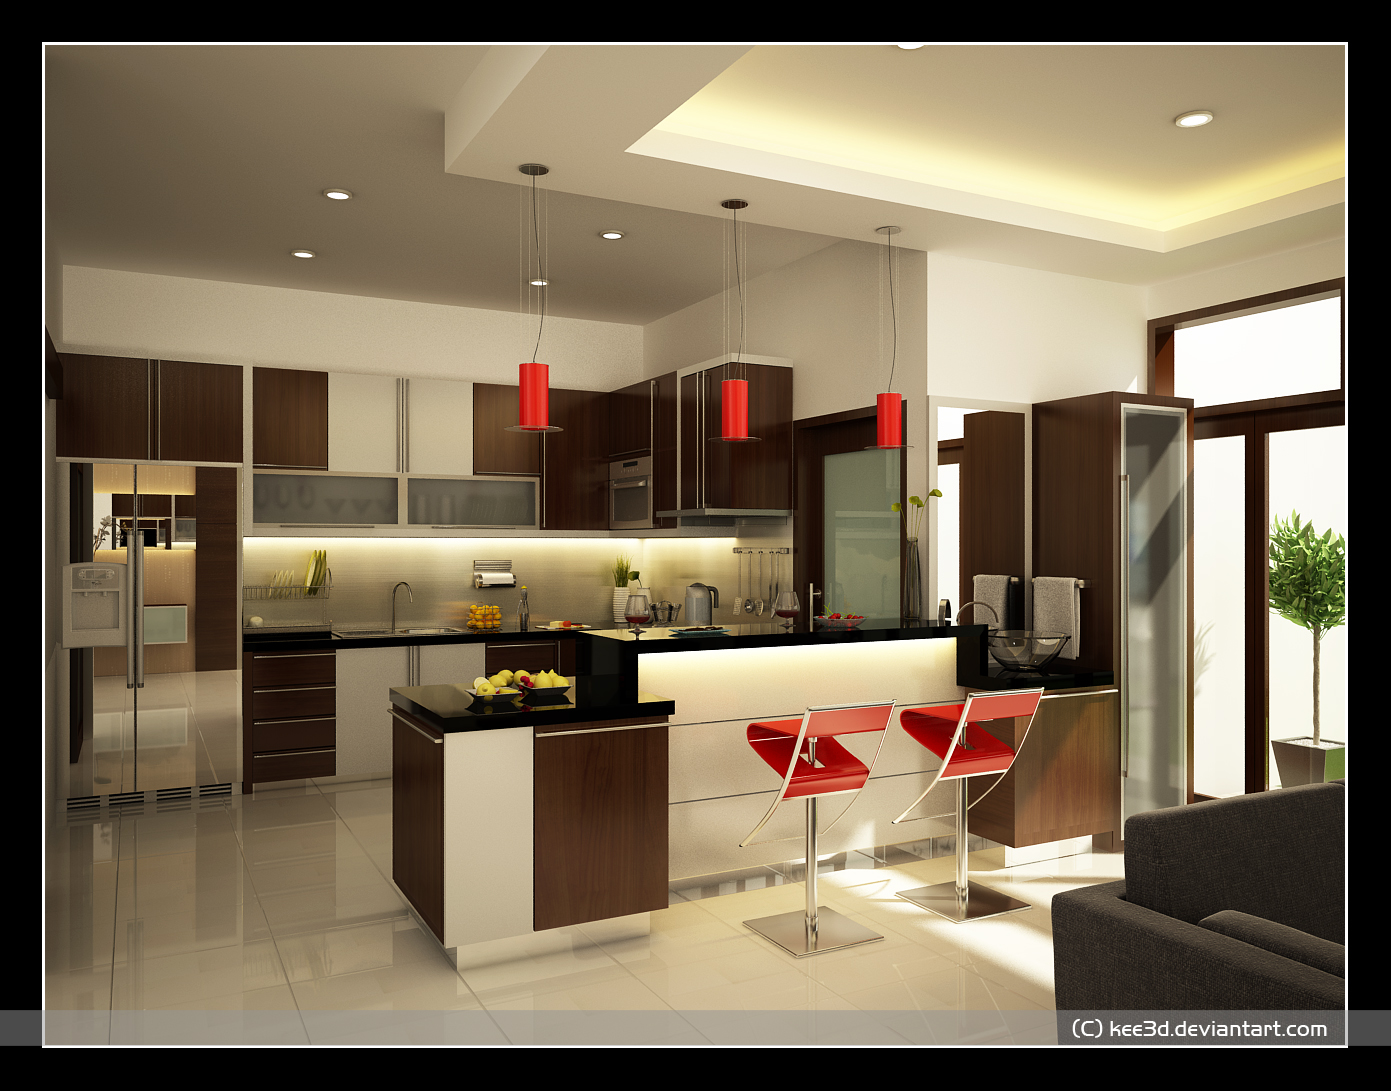 by octo brilian - Kitchen Design Idea